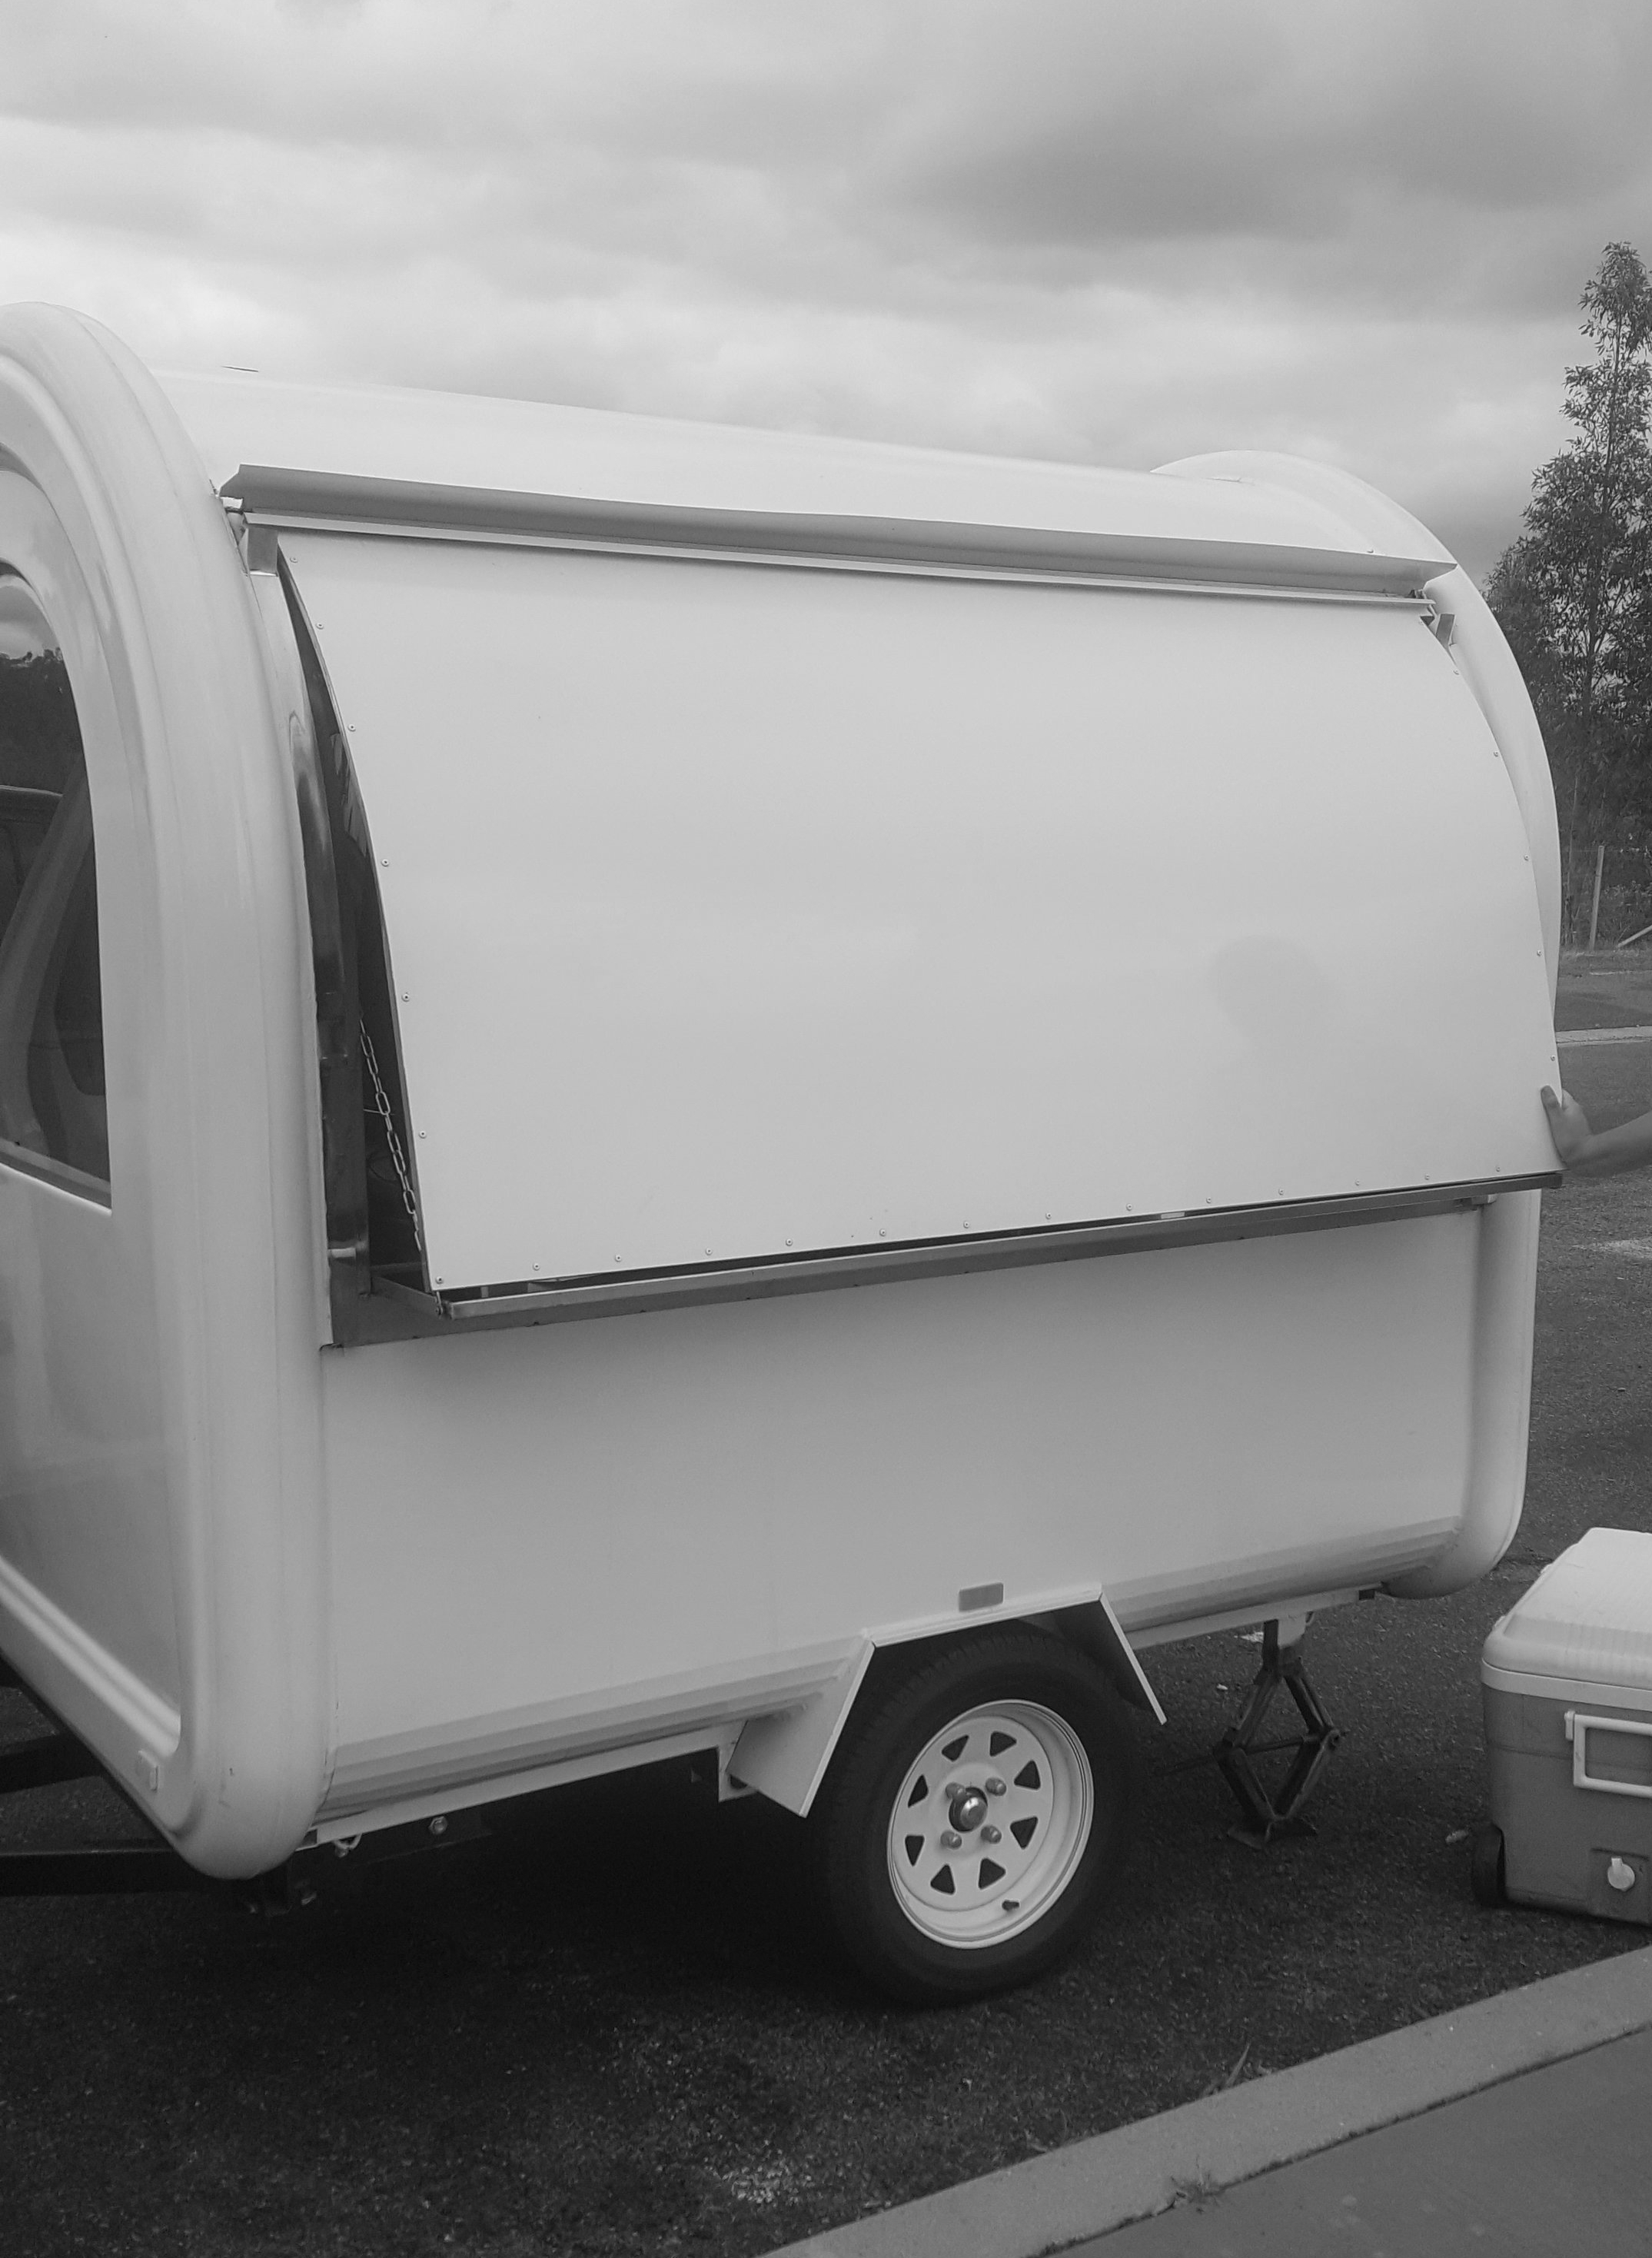 Jolly Beans mobile coffee trailer - clean and white white with great curves, before the fantastic happy makeover